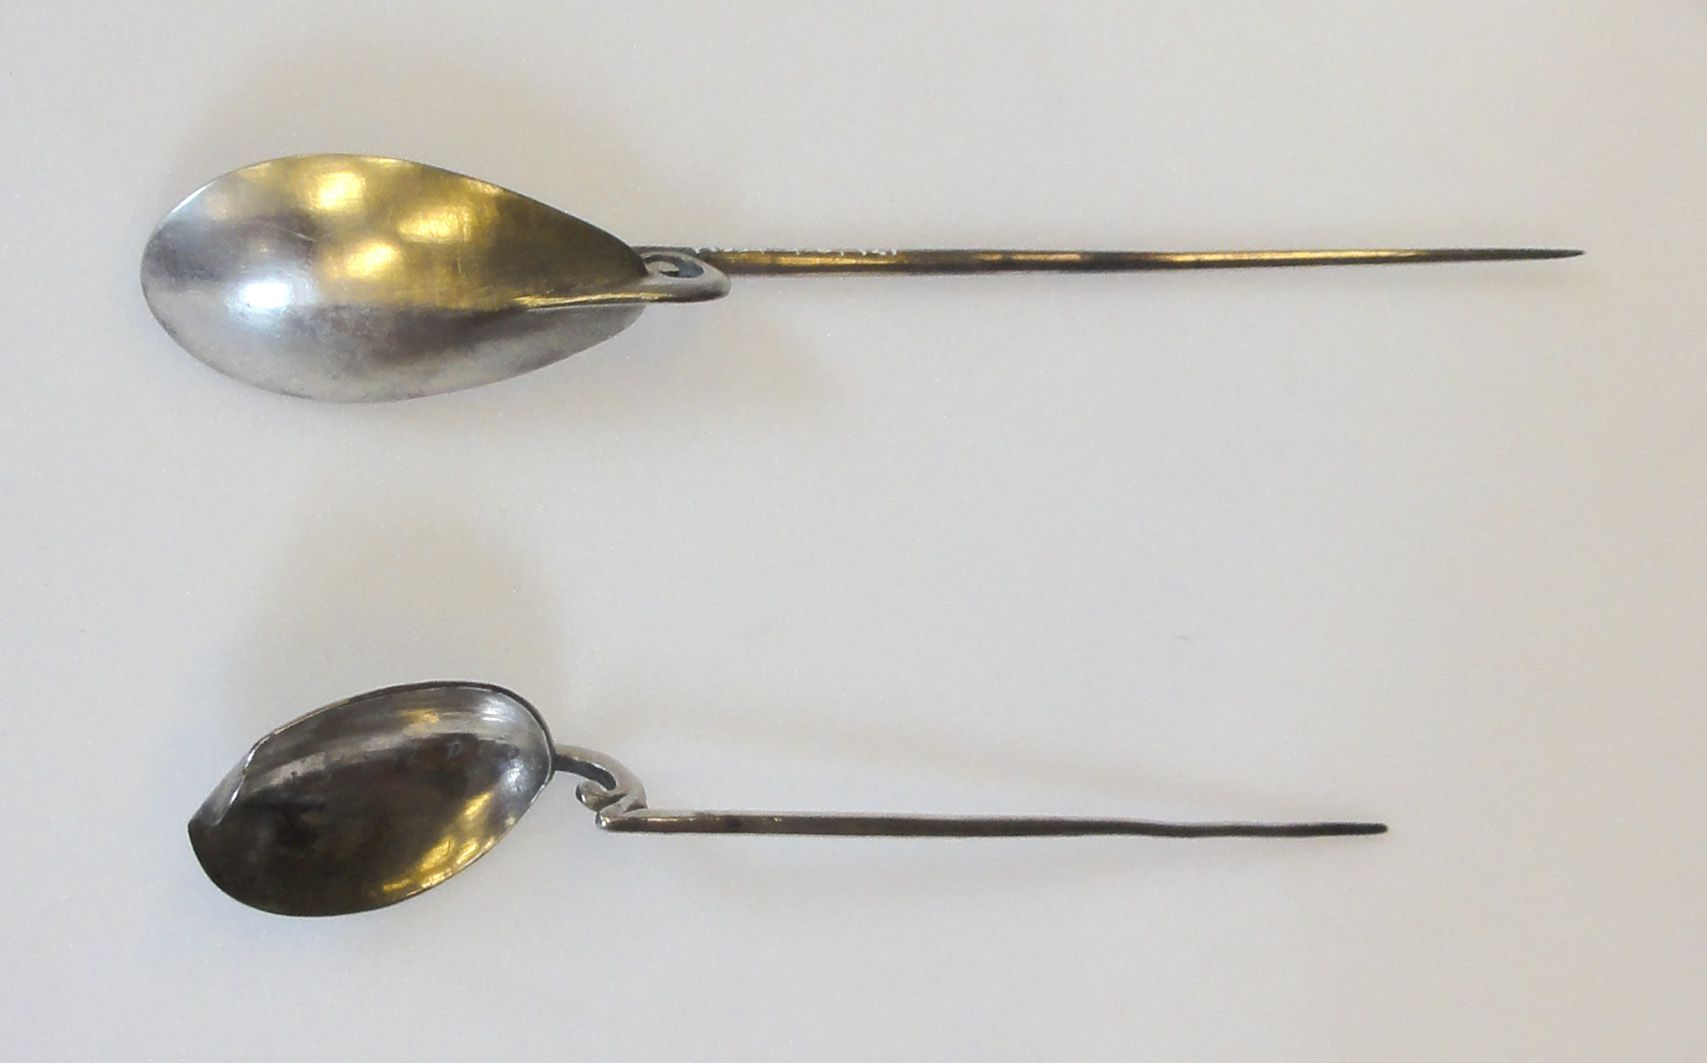 Cucchiaio Wiki Wikipedia Spoon All About Spooning